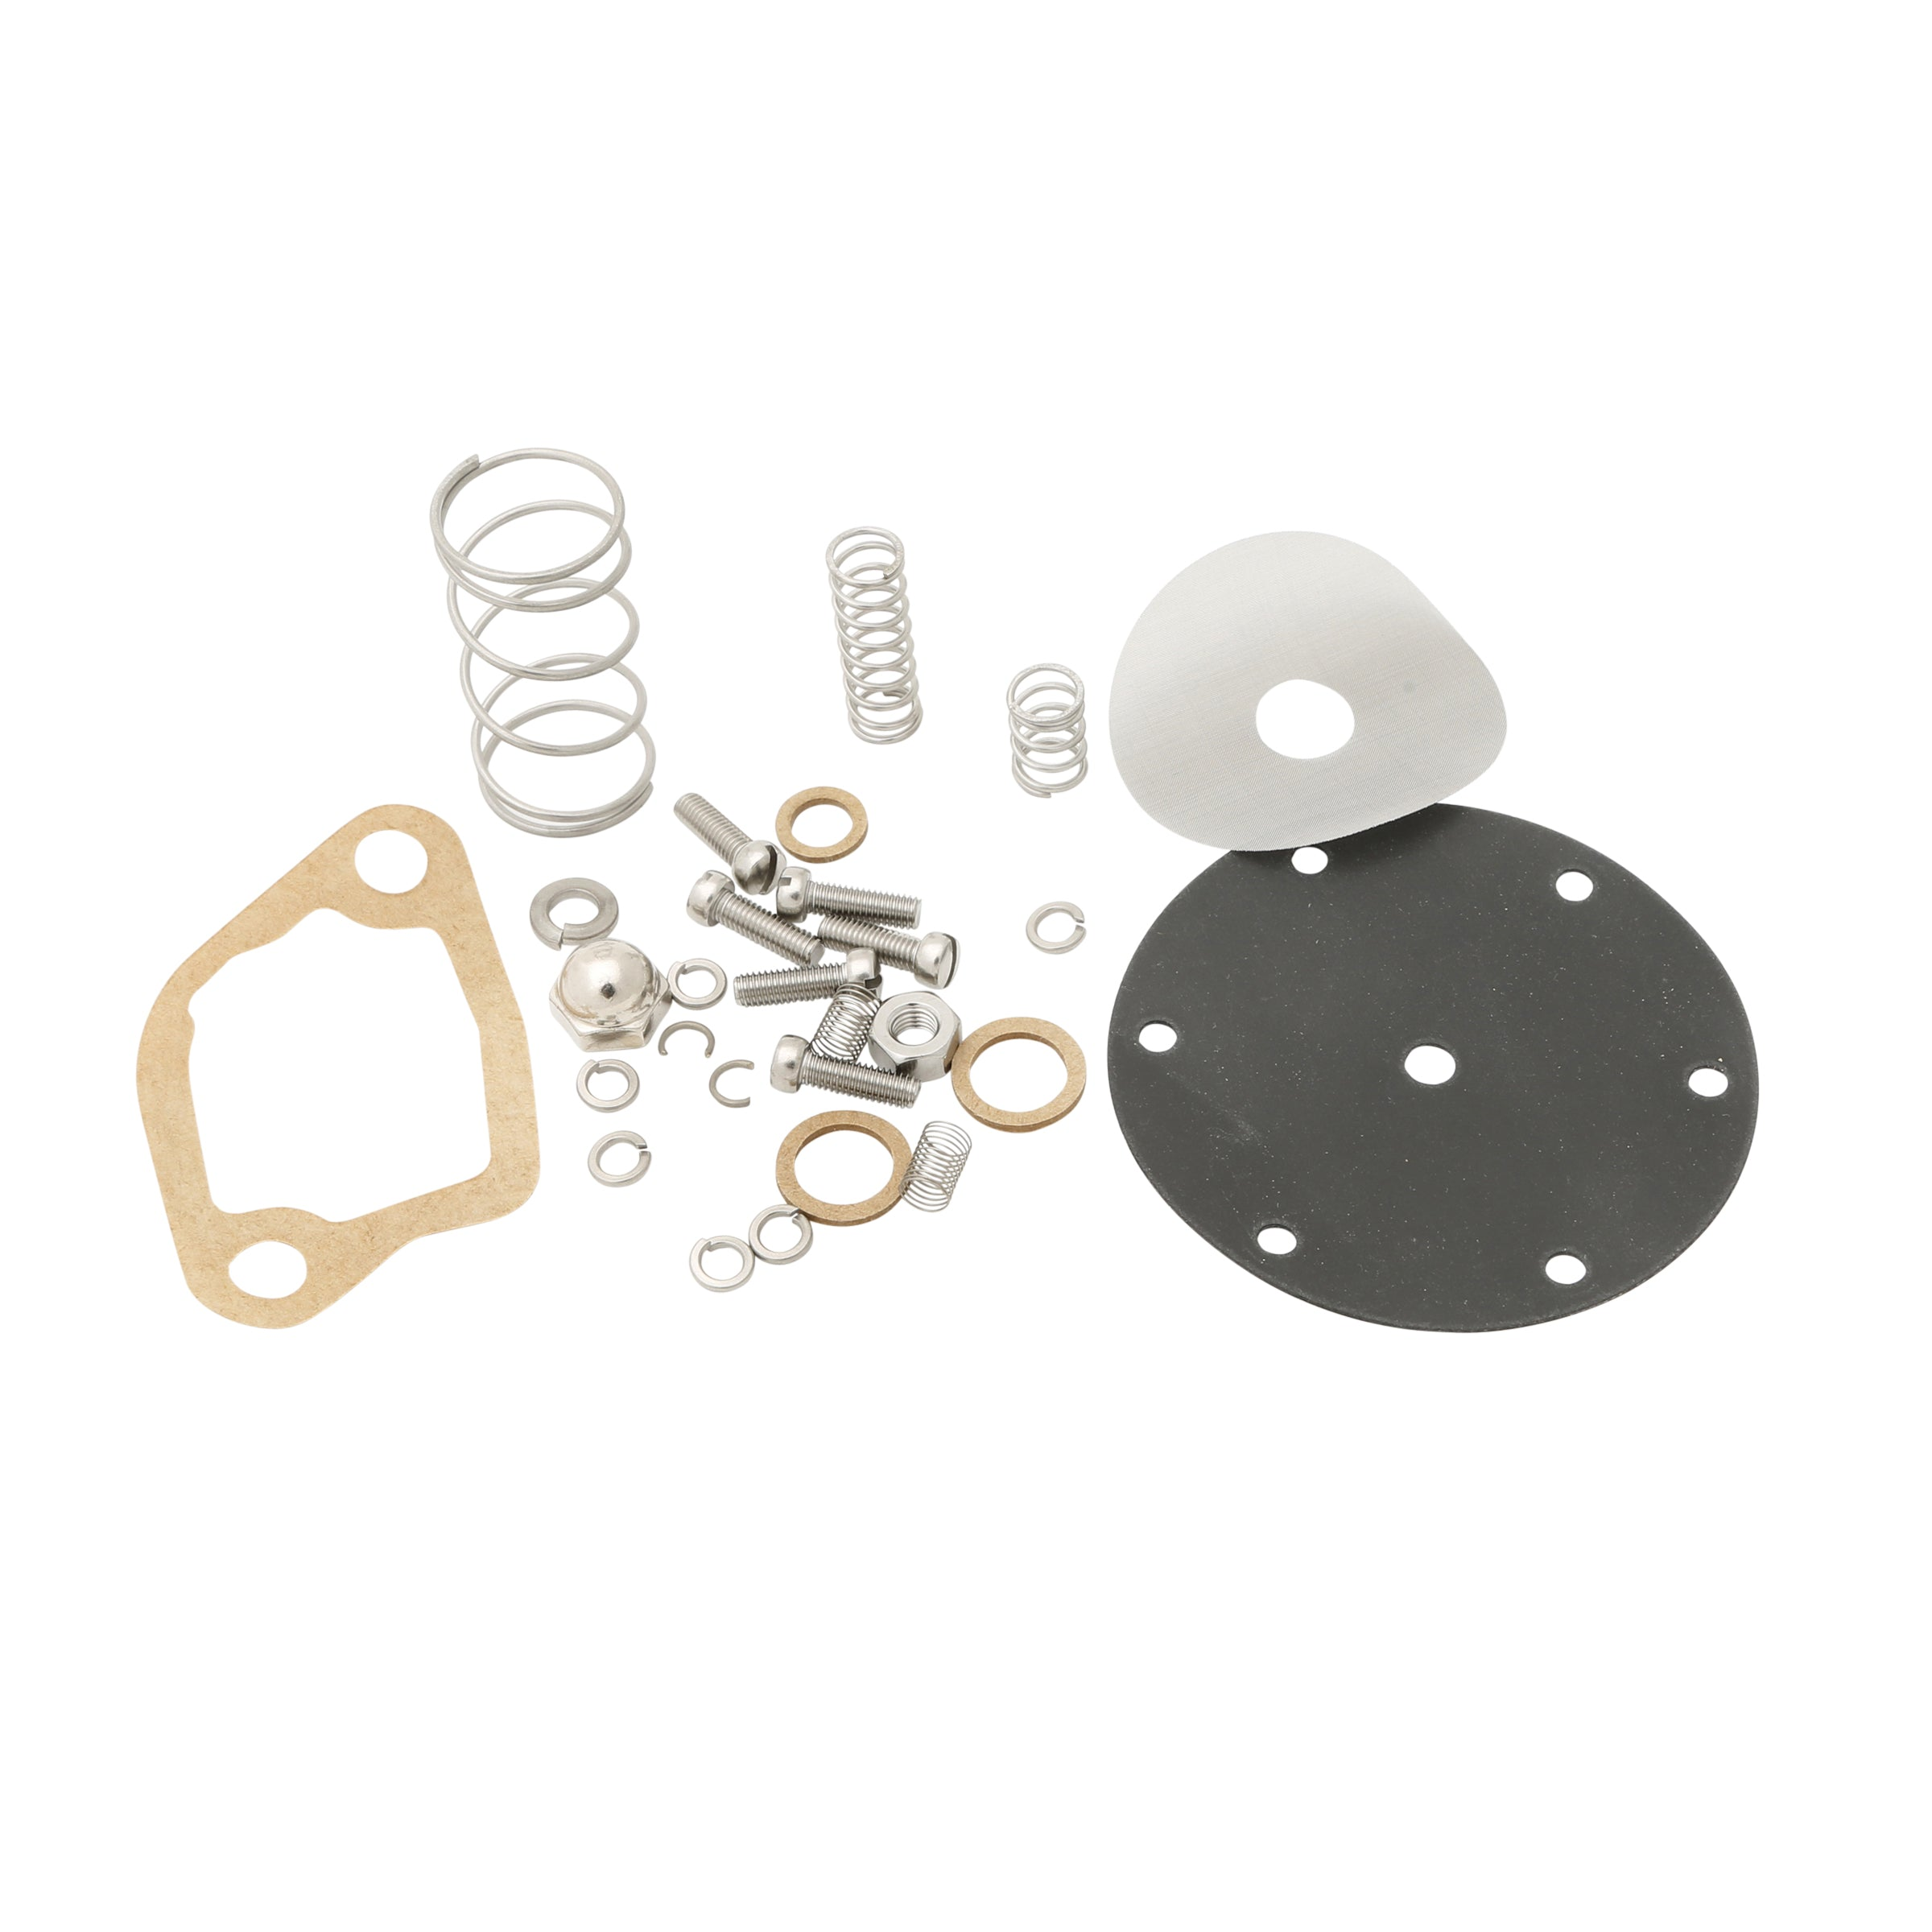 Fuel Pump Repair Kit • 1932-34 Ford 4 Cylidner